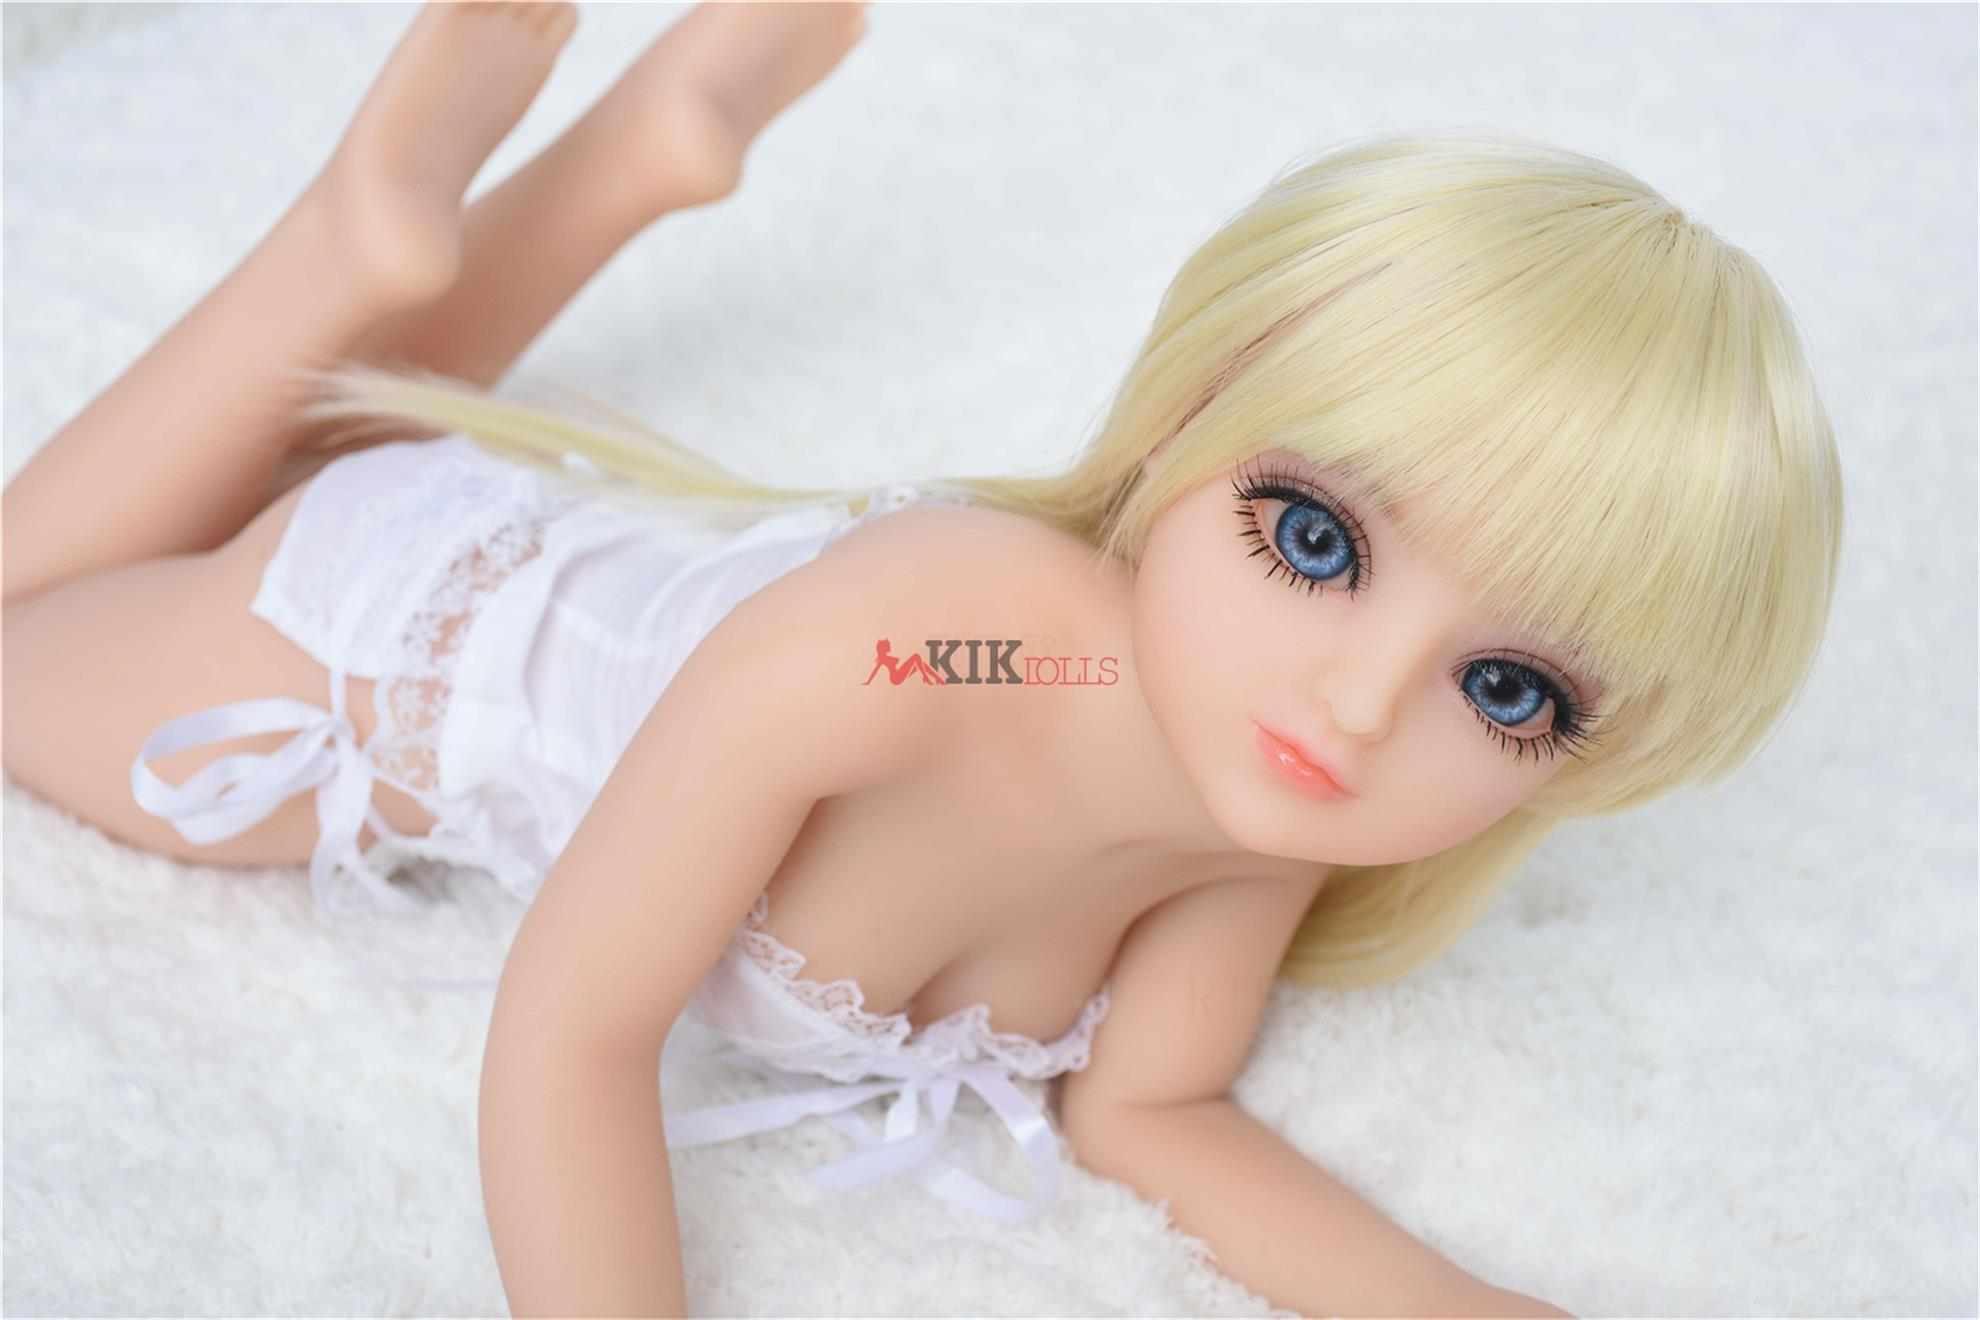 65cm small size tiny sex doll (18)